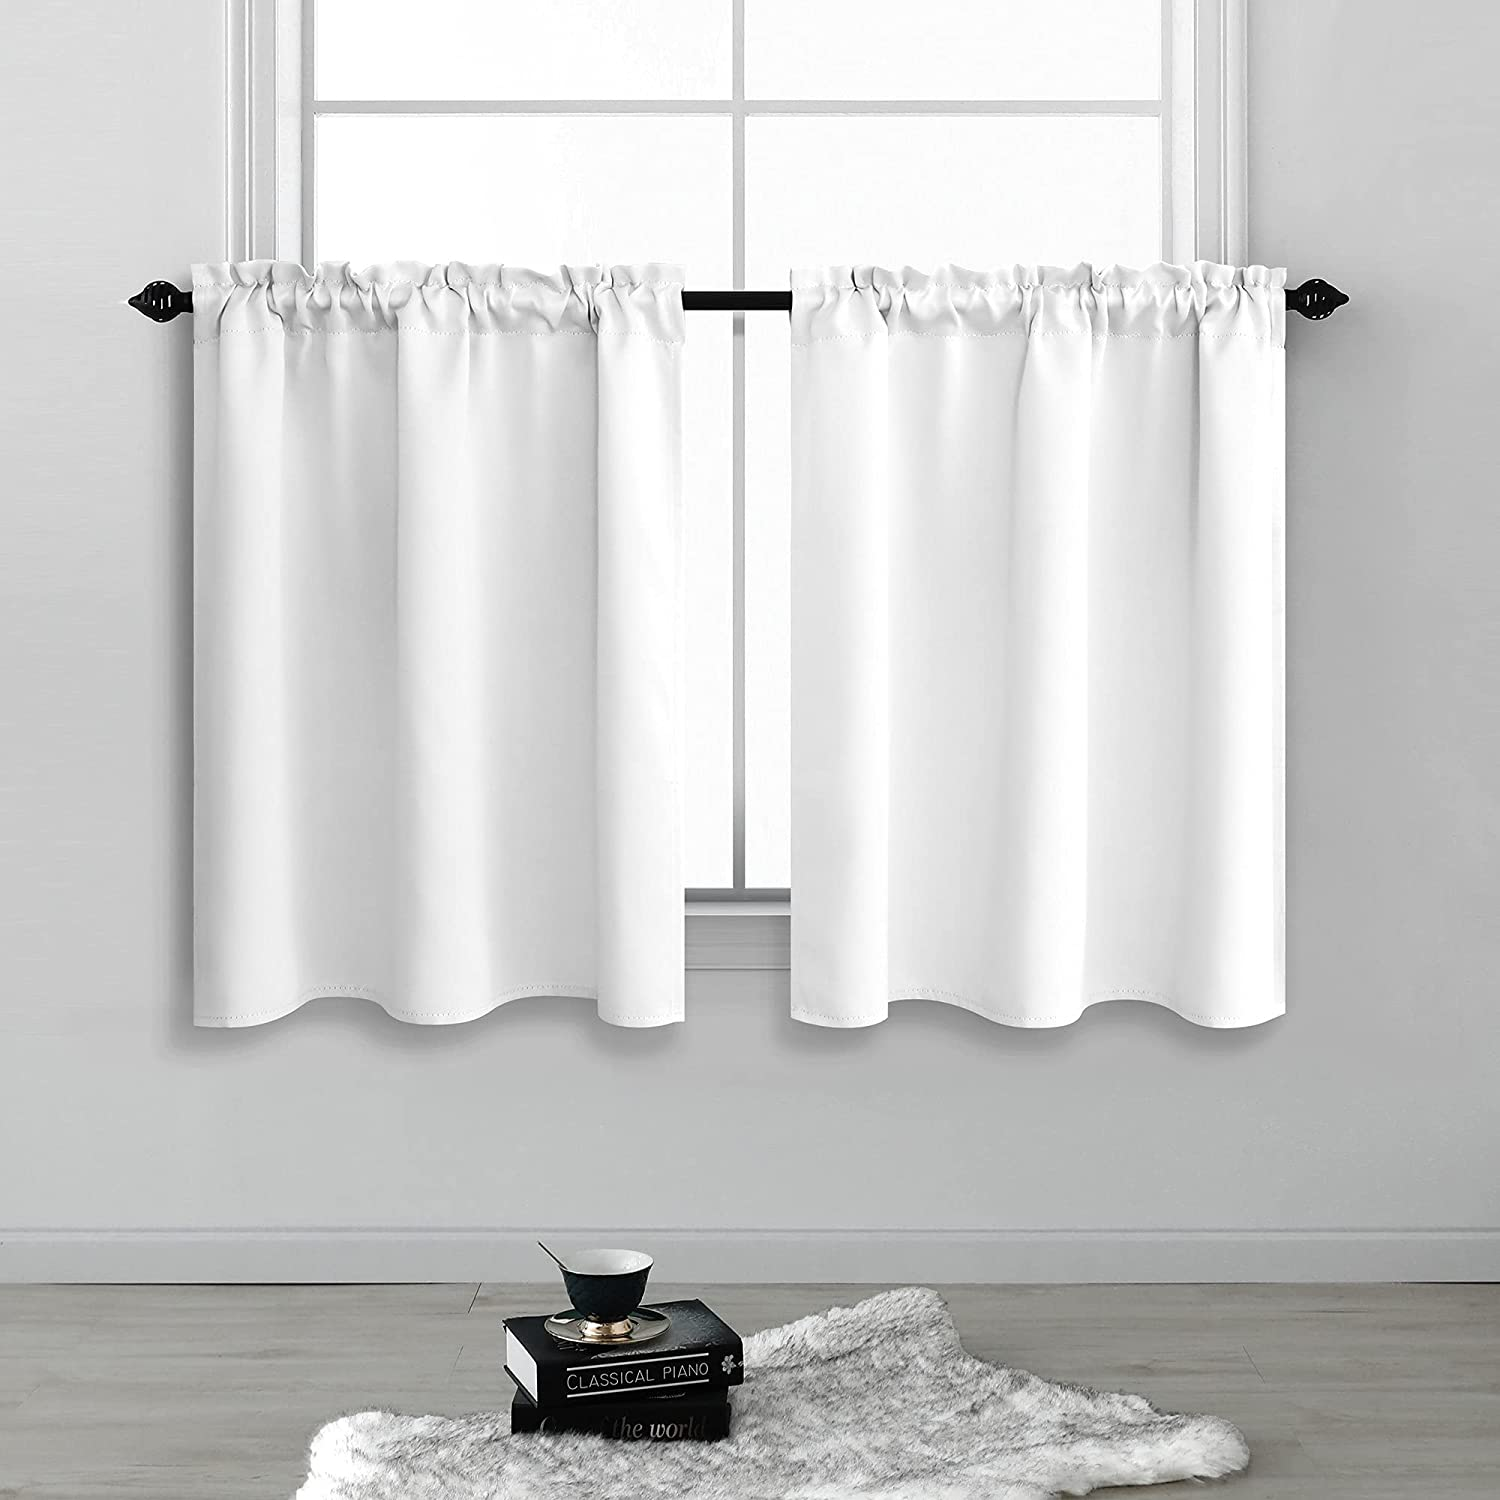 White Blackout Curtains for New product type Bedroom 36 Inch Selling and selling Panels 2 Length Set